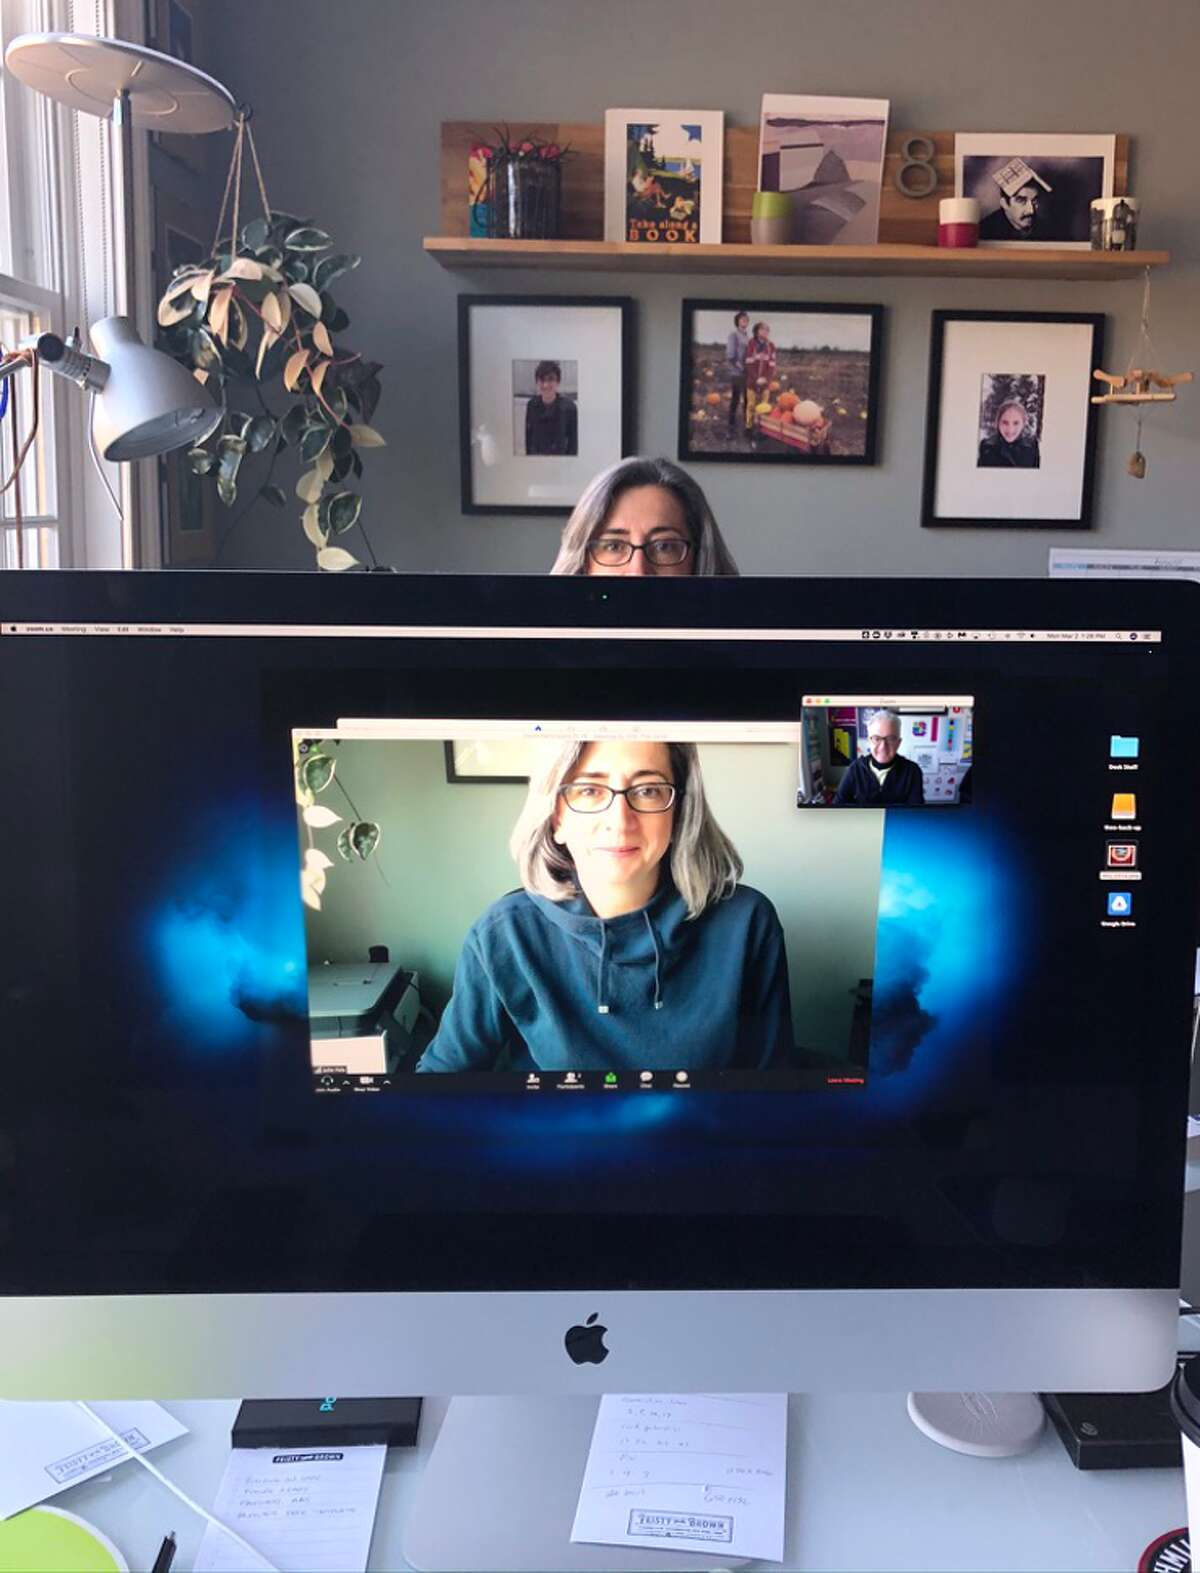 In our studio, I work directly across from my wife, but can't see her so sometimes we Zoom each other when we need to talk.